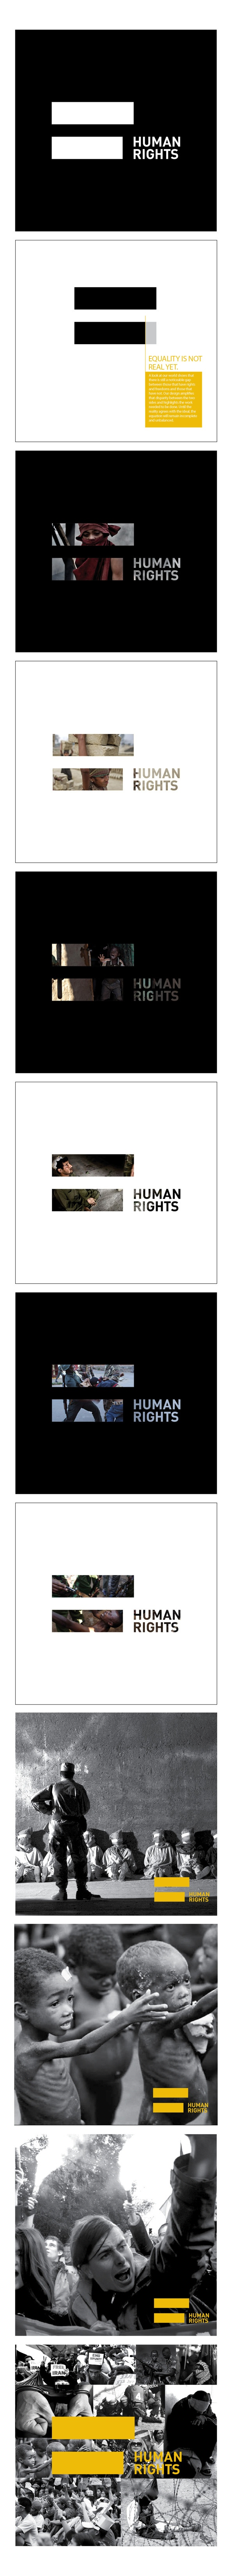 Human Rights - Uneqaul Sign by Assia Merazi, via Behance